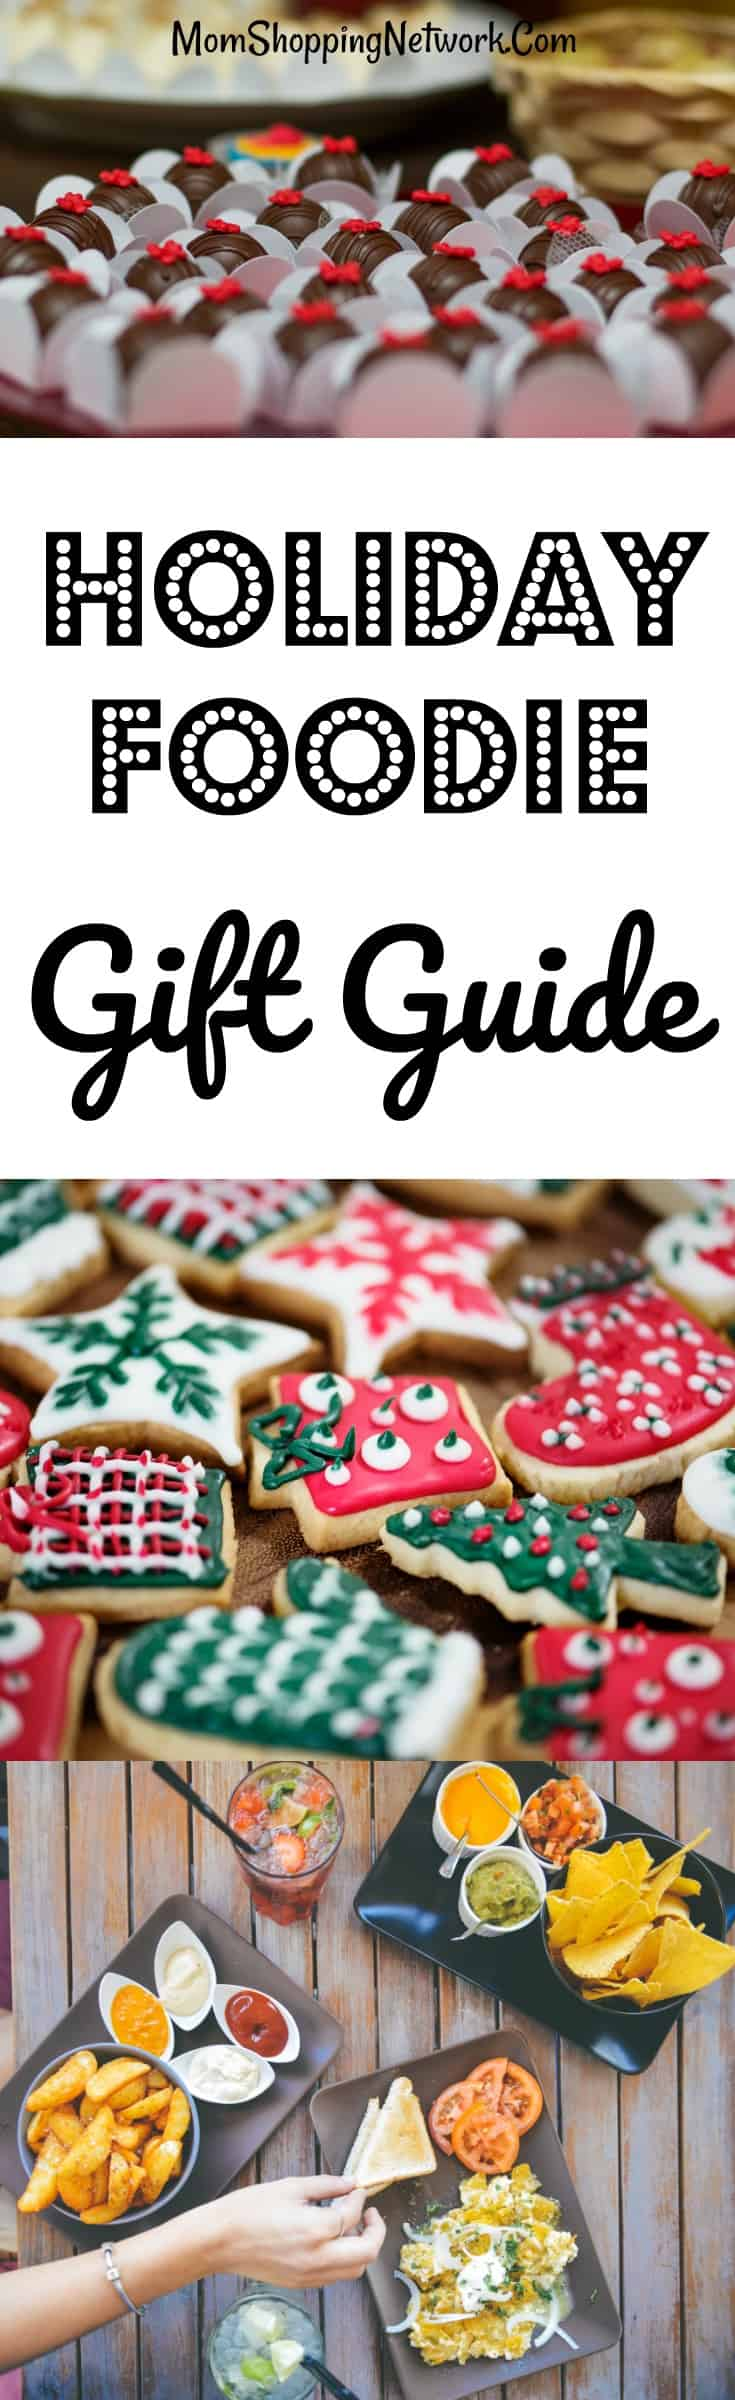 This 2017 Holiday Foodie Gift Guide has some awesome gift ideas for true food lovers! Foodie|Foodie Gifts|Foodie Gift Guide|Foodie Gift Ideas|Foodie Gift Basket|Foodie Gift Basket Ideas|Food Lovers Gifts|Food Lovers Gift Ideas|Food Lovers Gift Guide|Food Lovers Gift Basket|Food Lovers Gift Basket Ideas|2017 Holiday Gift Guide|Holiday Gift Guide|Gift Guide